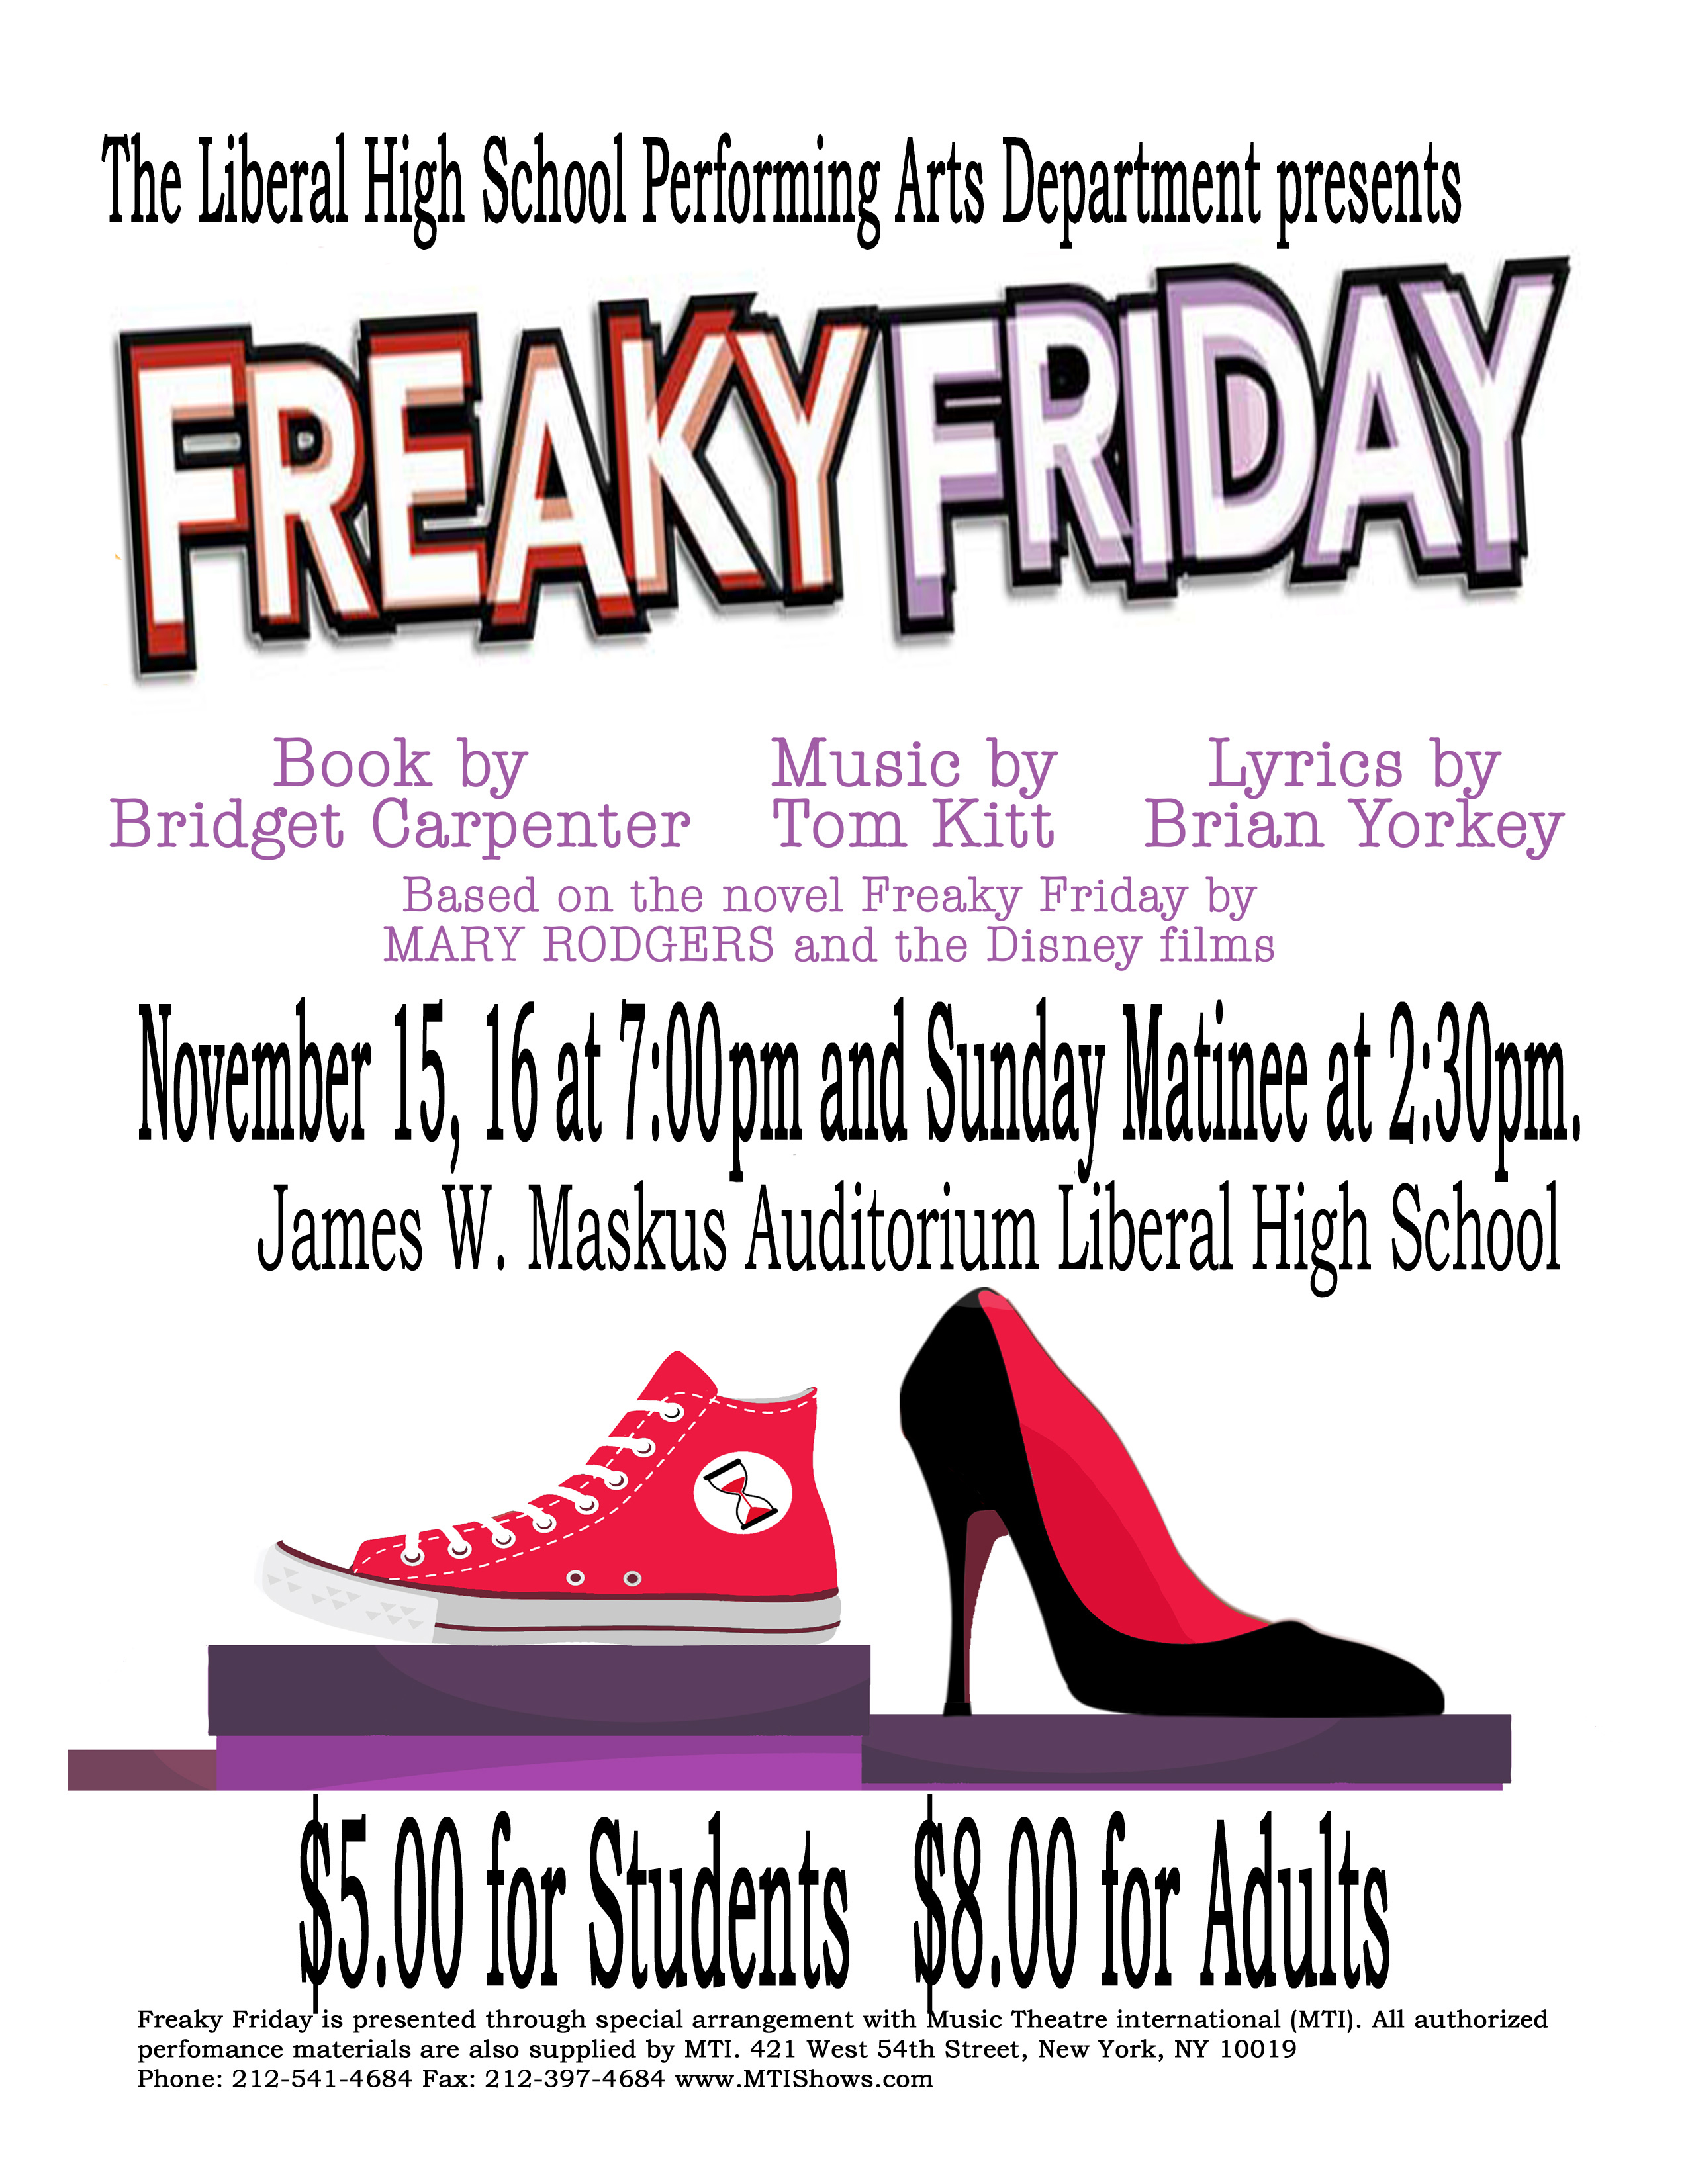 Freaky Friday the Musical this Weekend at LHS